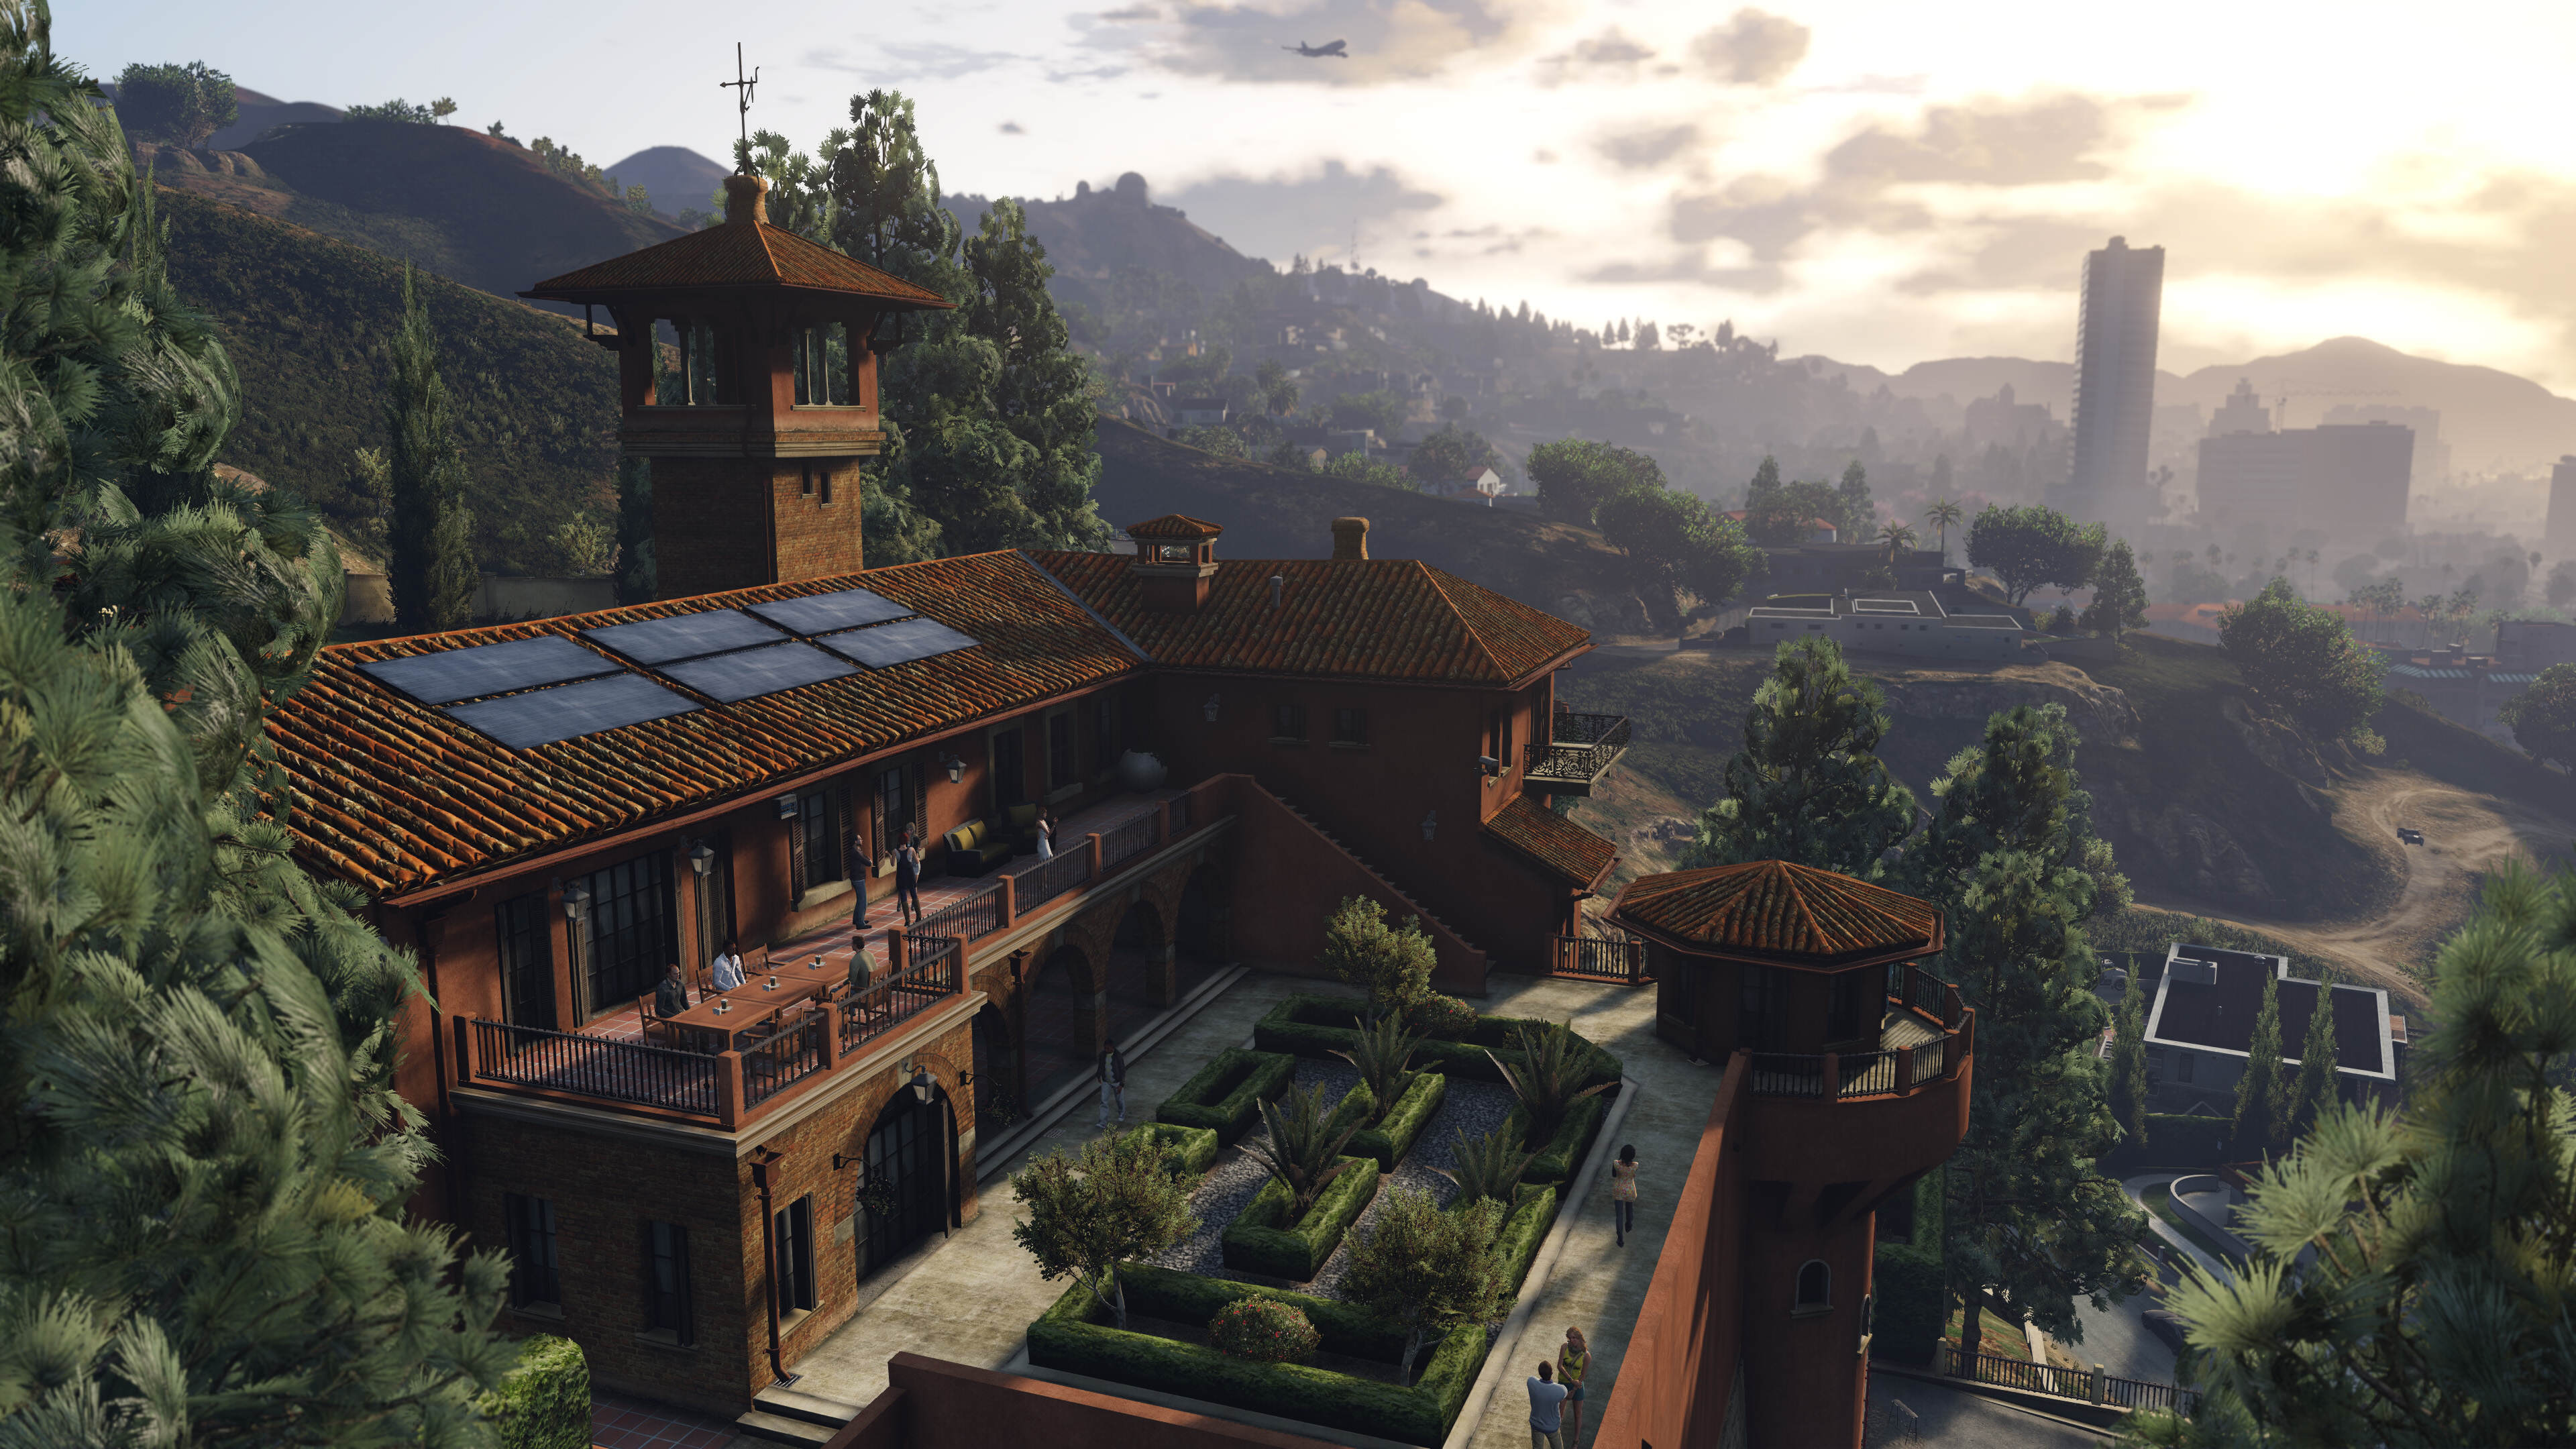 grand theft auto 5s latest pc screenshots sure are a looker 142748209909 Rockstar Release Much Anticipated Grand Theft Auto V PC Screenshots